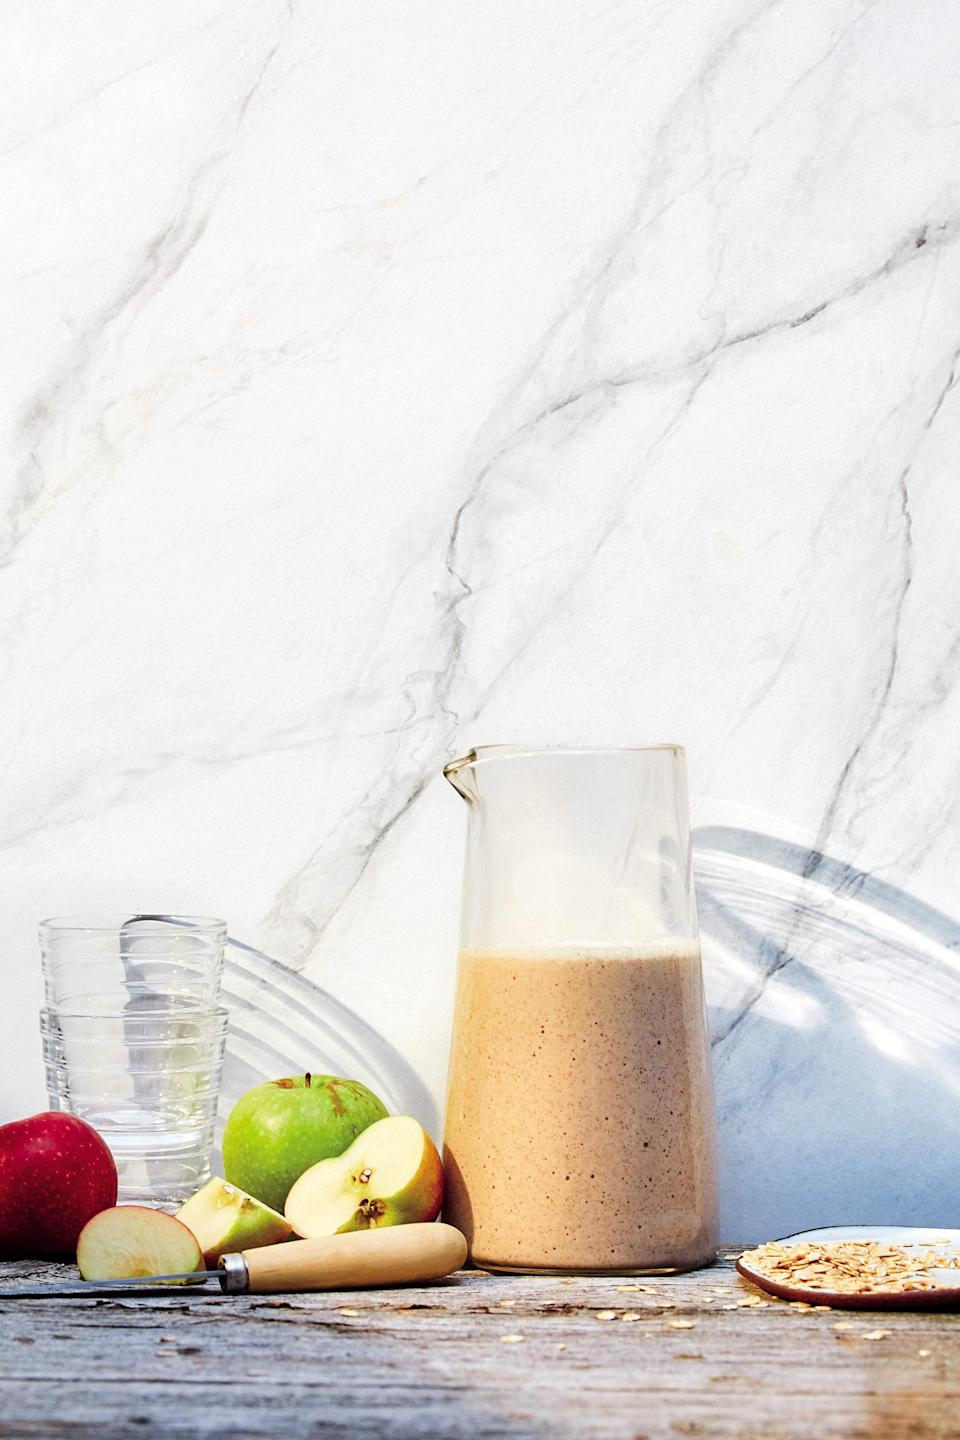 """This smoothie is the delicious, drinkable solution for all your apple pie cravings. <a href=""""https://www.epicurious.com/recipes/food/views/apple-pie-smoothie-smoothie-project-catherine-mccord?mbid=synd_yahoo_rss"""" rel=""""nofollow noopener"""" target=""""_blank"""" data-ylk=""""slk:See recipe."""" class=""""link rapid-noclick-resp"""">See recipe.</a>"""